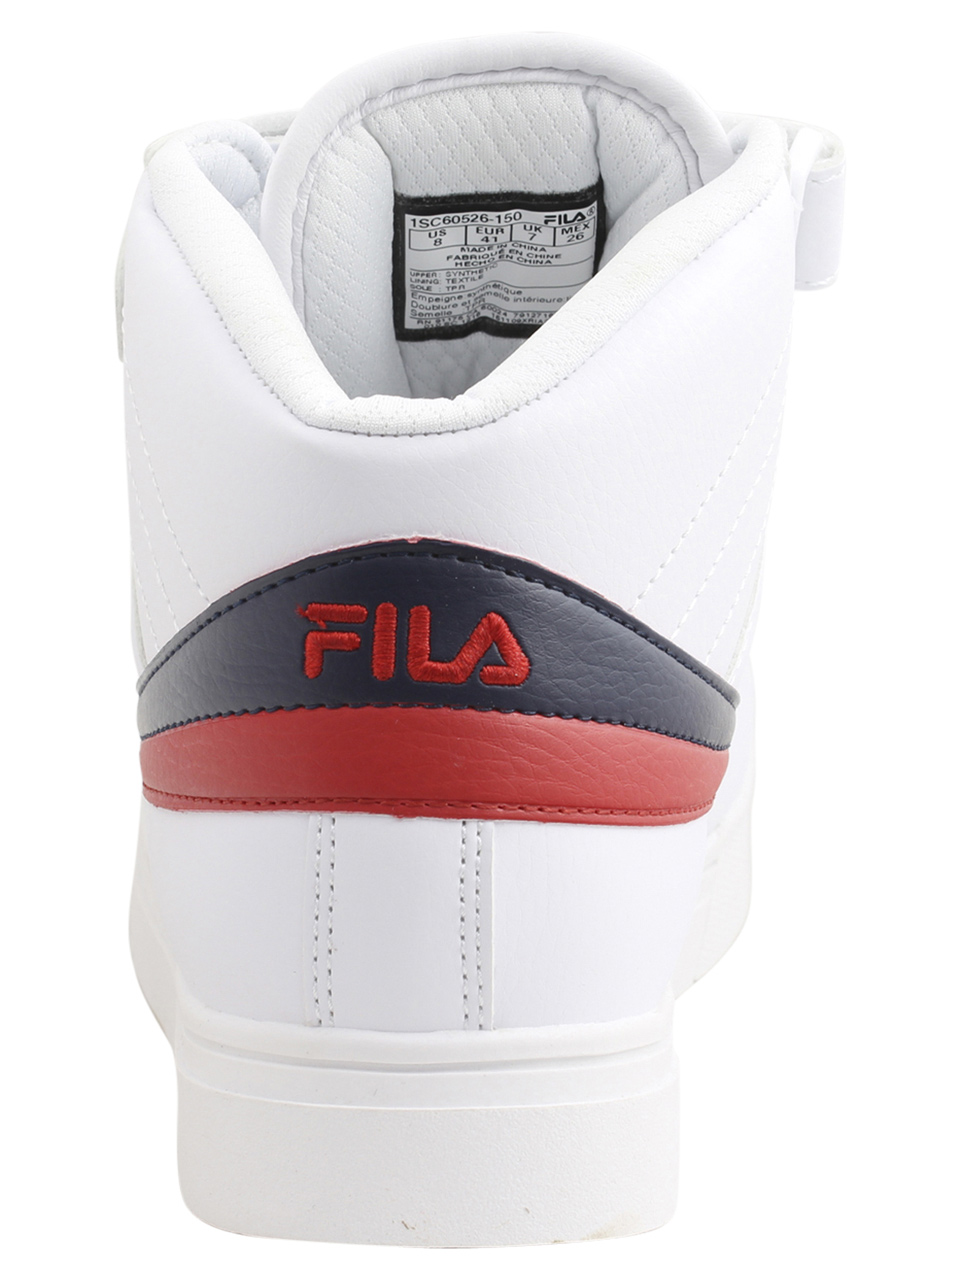 Fila-Men-039-s-Vulc-13-Mid-Plus-Sneakers-Shoes thumbnail 46